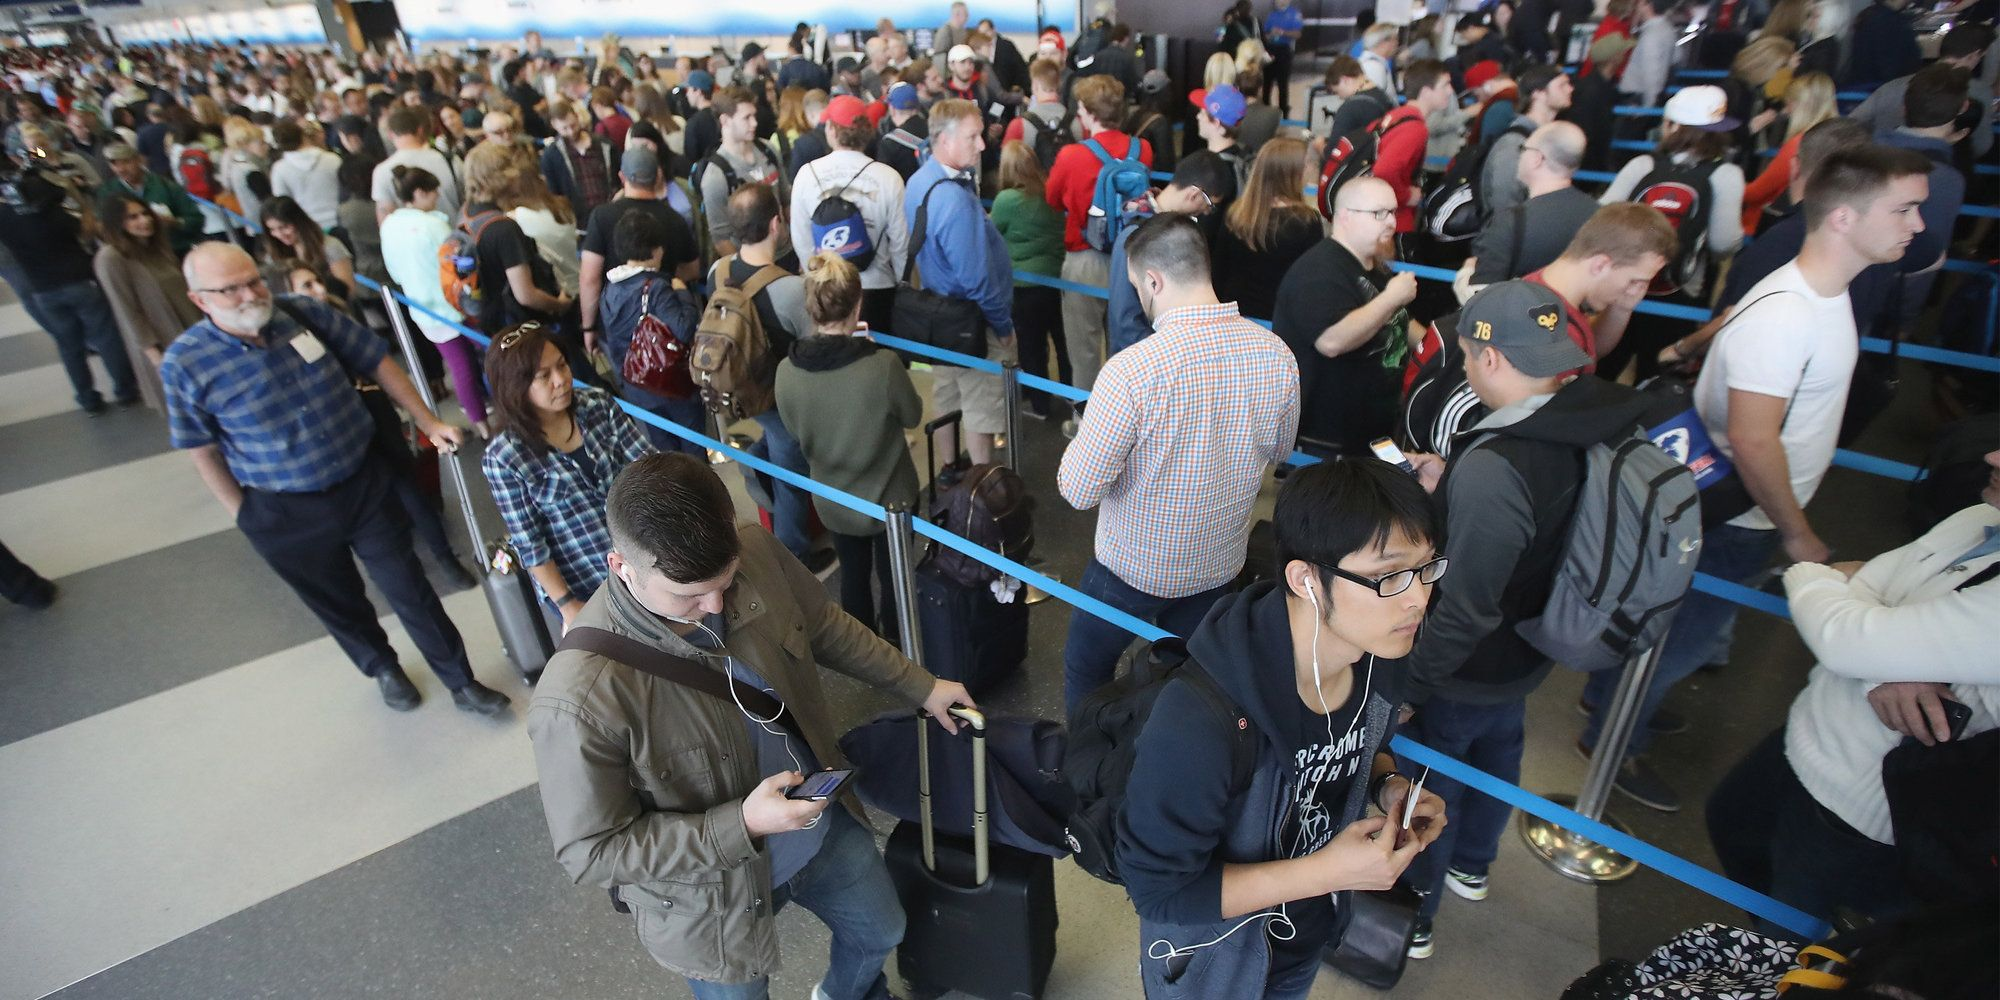 5 Airports Where Security Lines Are Shortest (And 5 Where They're Way Too Long)